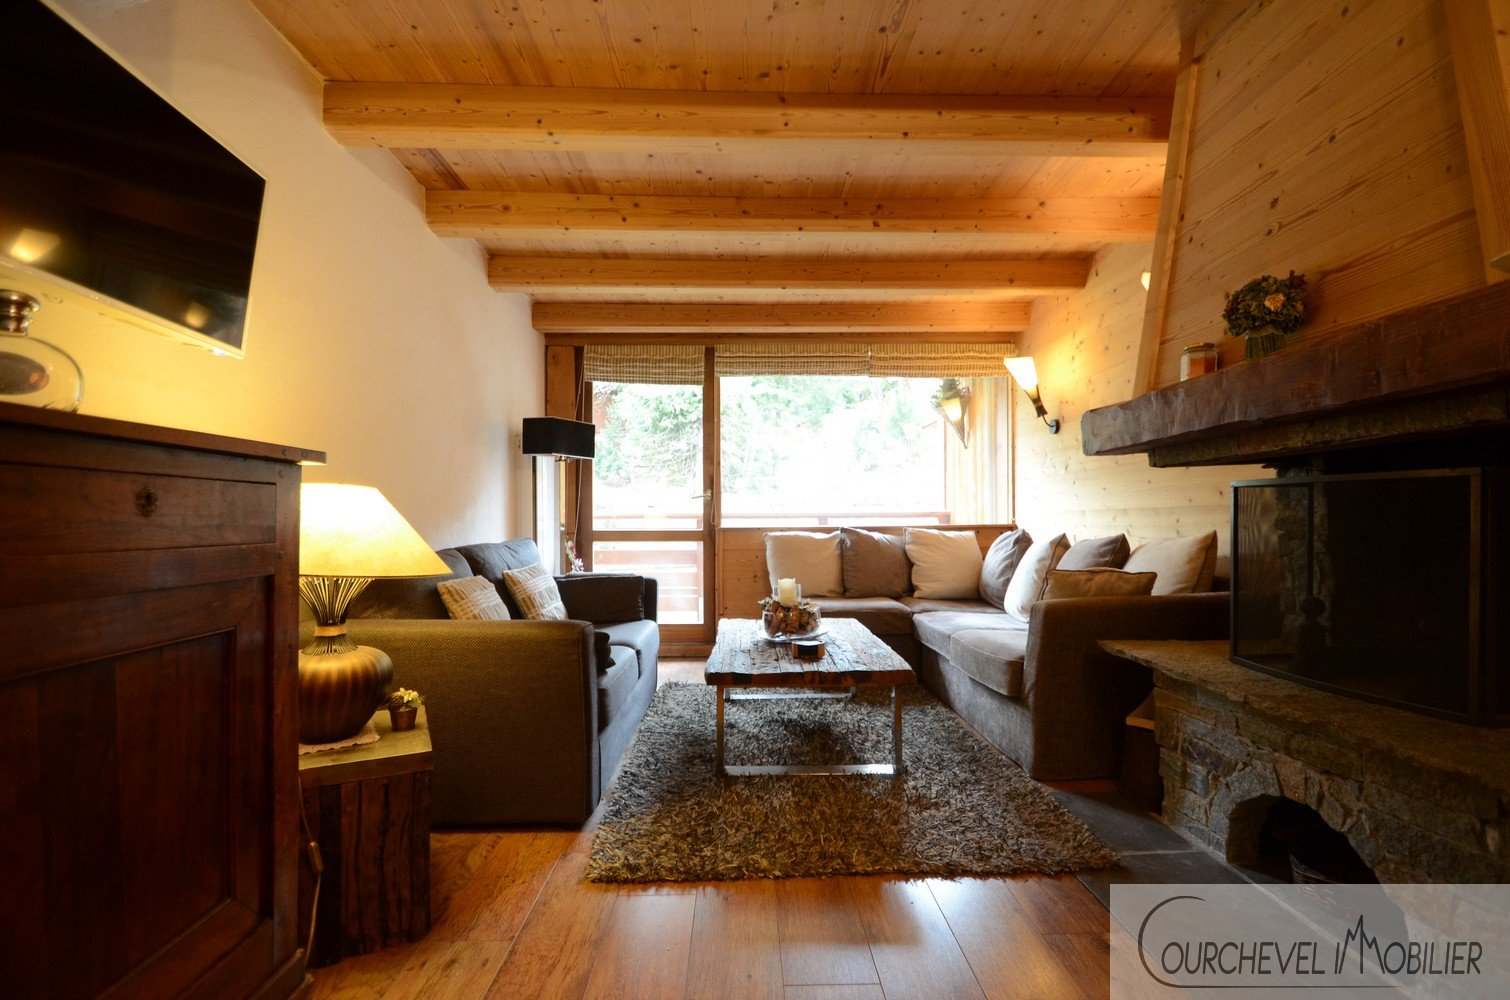 Duplex apartment in Courchevel 1550